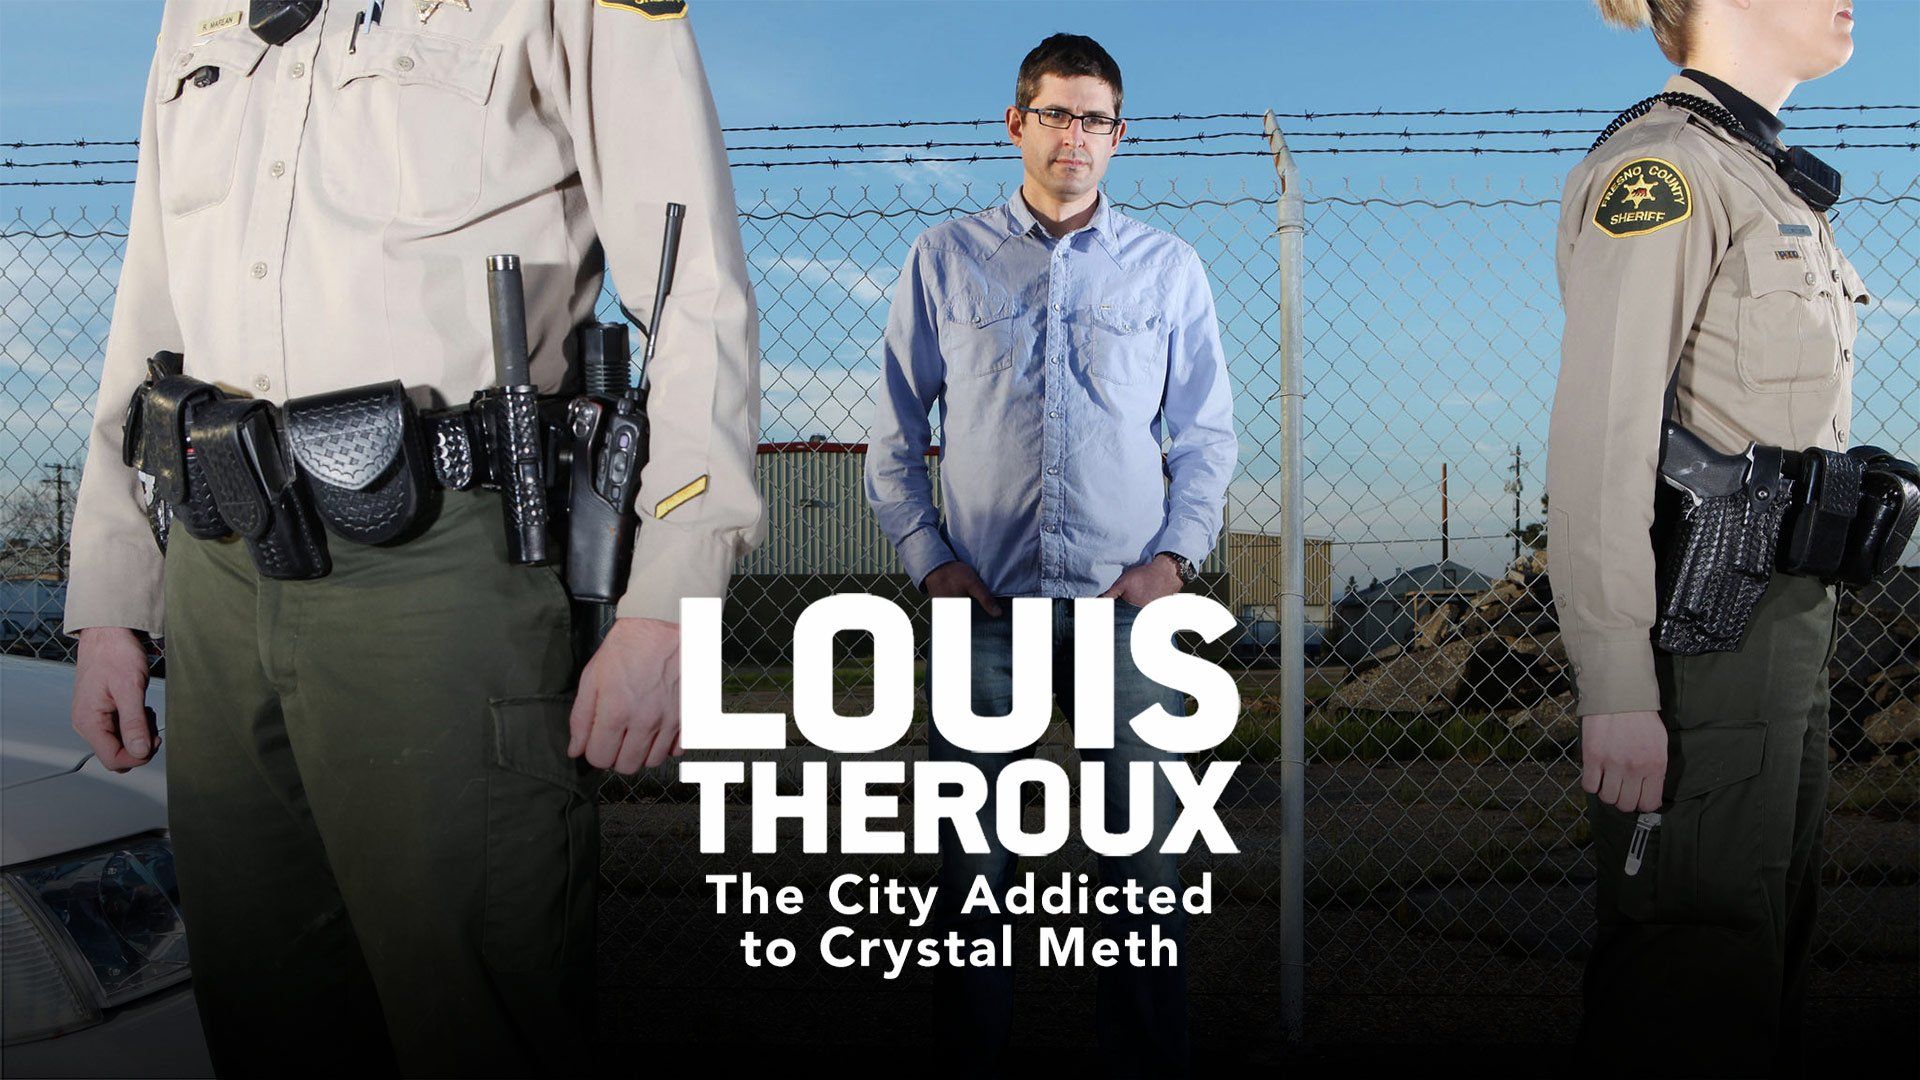 Louis Theroux: The City Addicted to Crystal Meth on BritBox UK